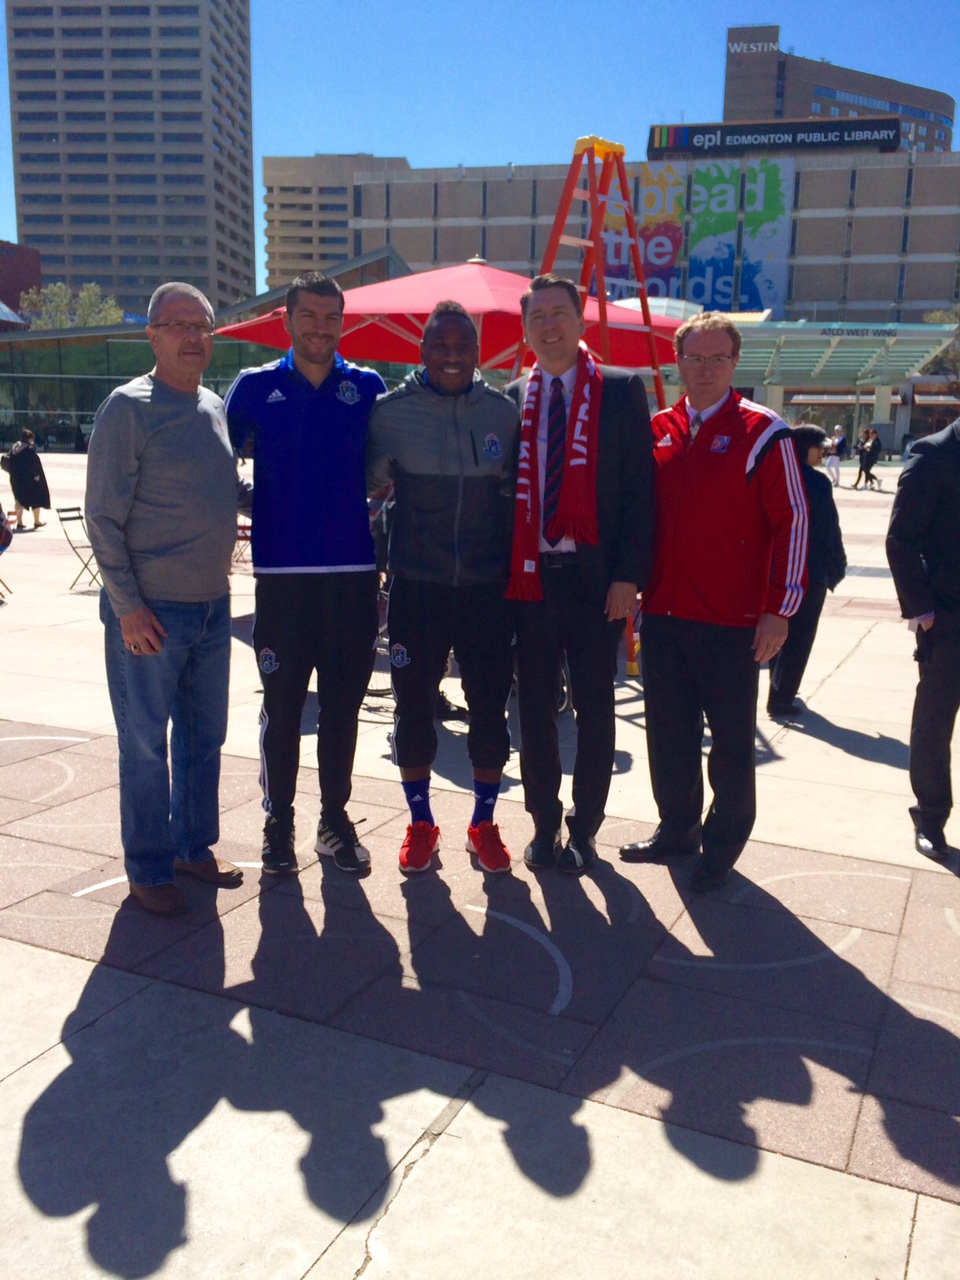 Councillor Anderson, Frank Jonke and Eddie Edwards of FC Edmonton Soccer team, Councillor Michael Walters, and City Manager Simon Farbrother at the Big Jersey Launch, April 30, 2015.